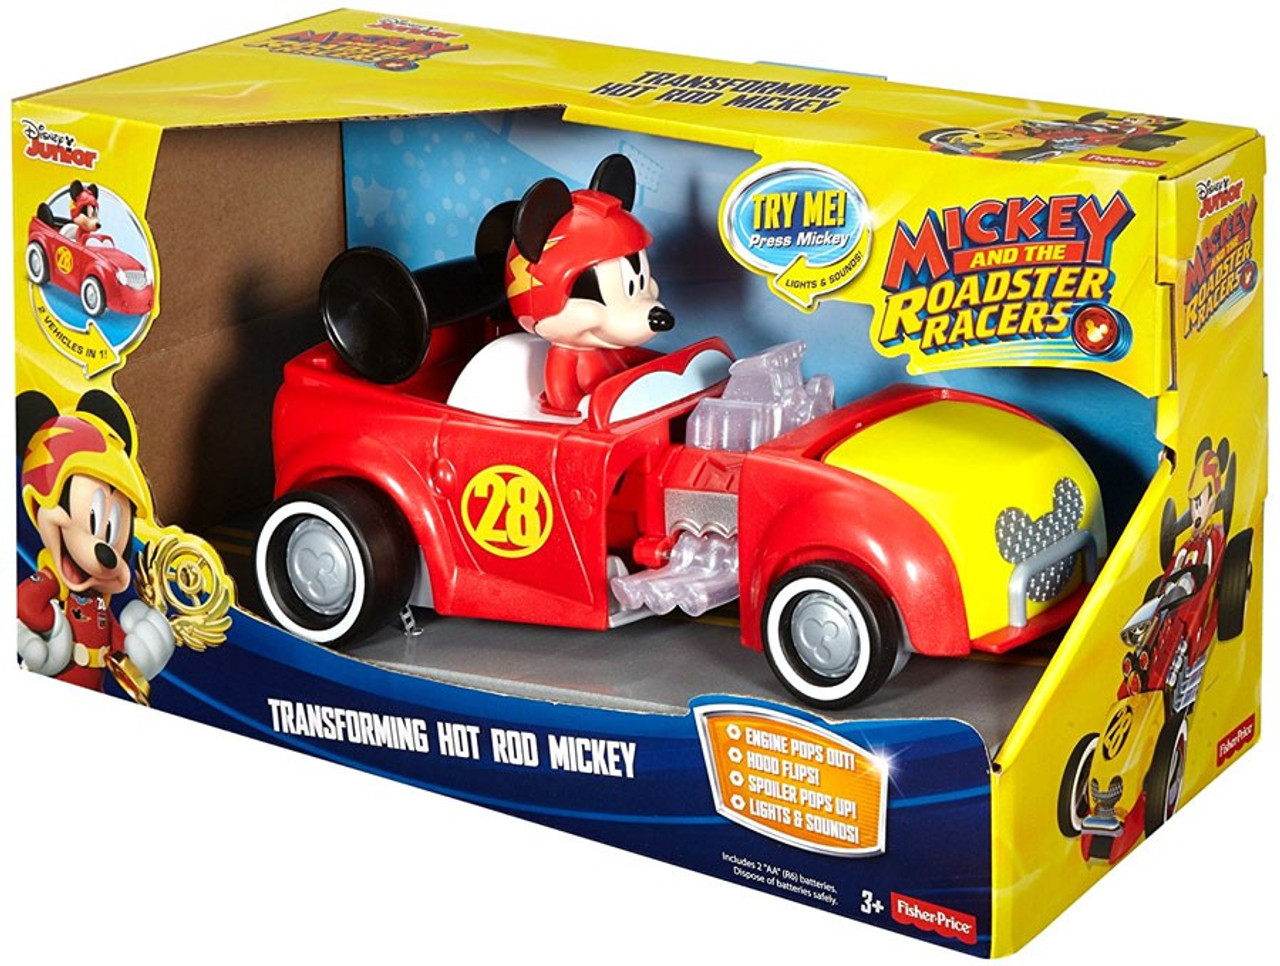 Fisher Price Disney Mickey Roadster Racers Transforming Hot Rod Mickey Vehicle Toywiz